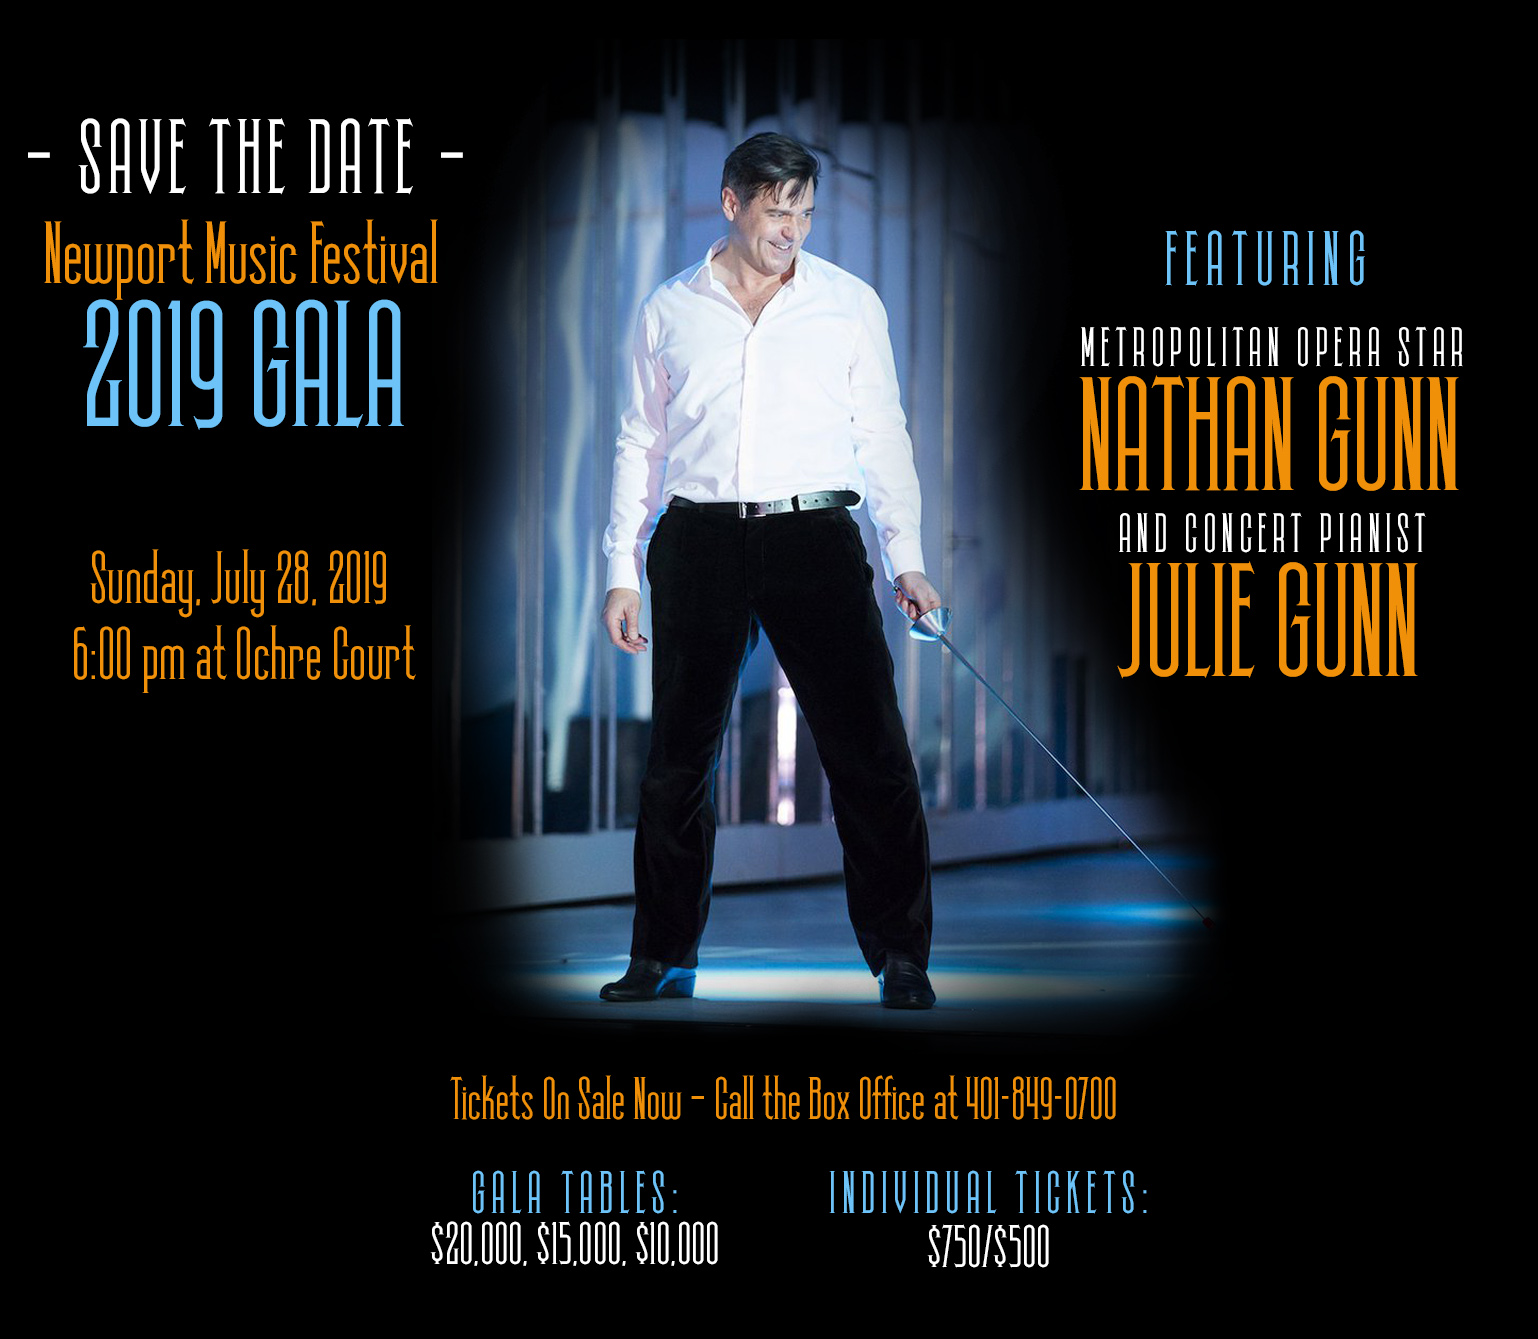 06-23-19 The Newport Music Festival 2019 Gala featuring